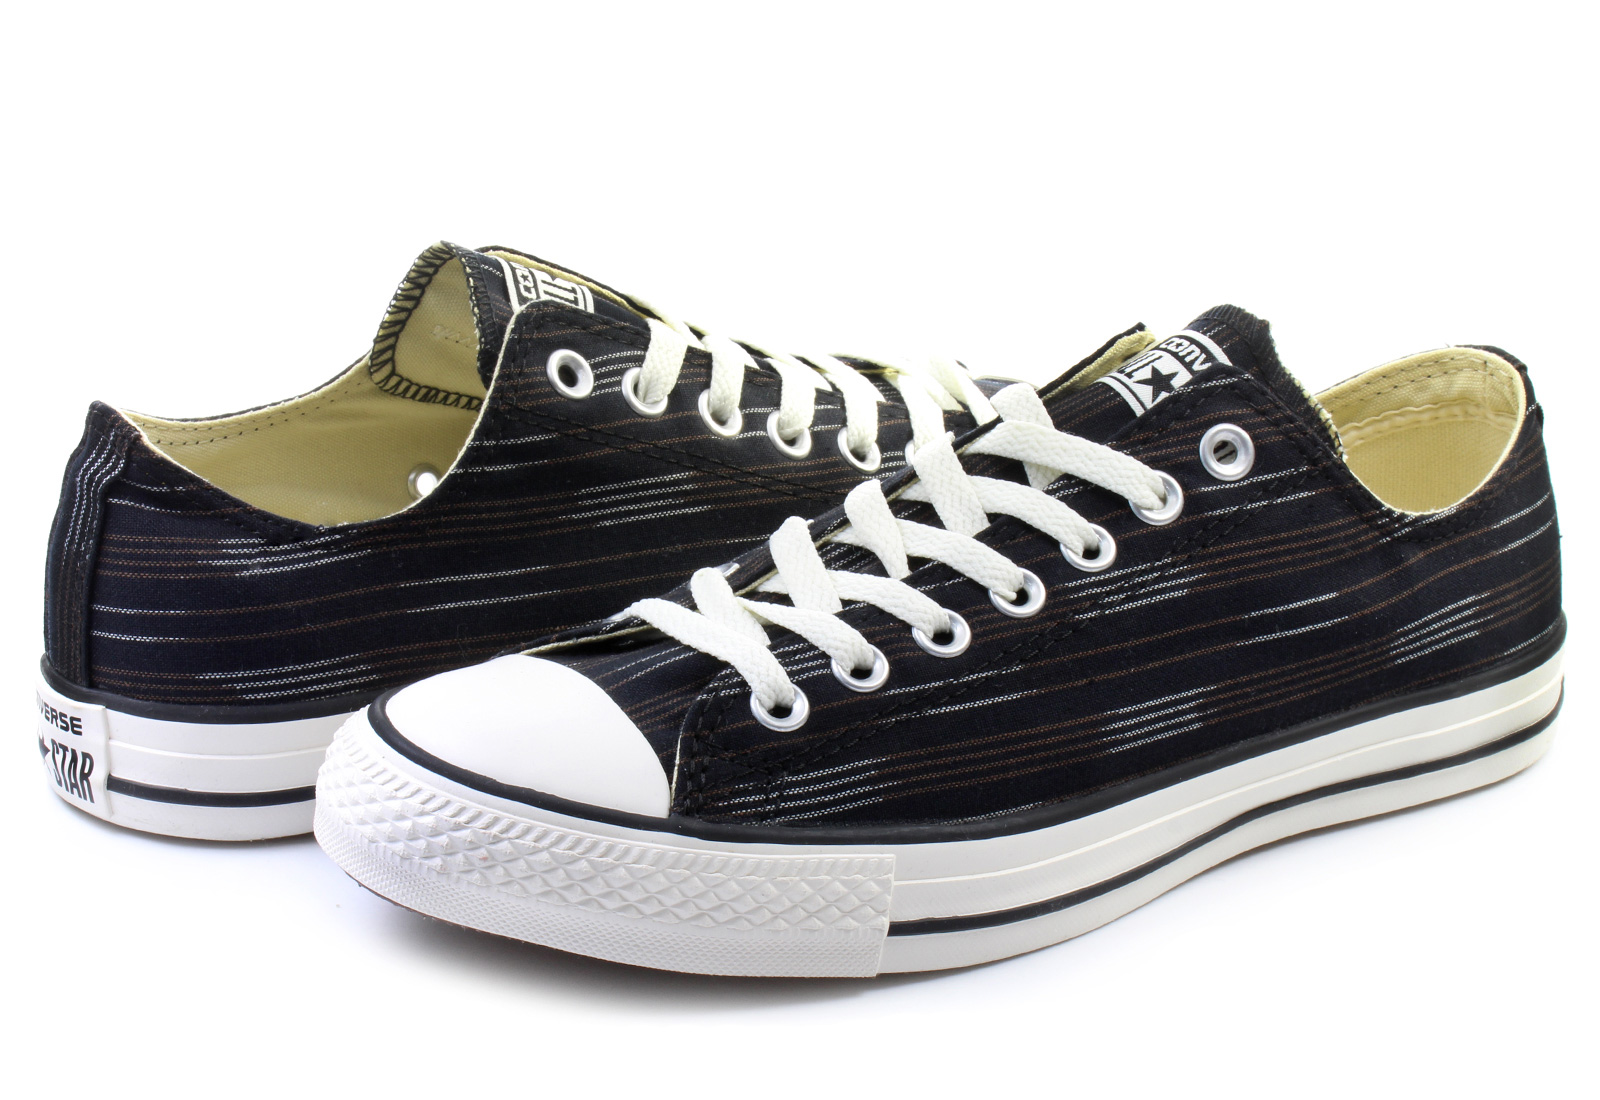 converse sneakers chuck taylor all star stripes. Black Bedroom Furniture Sets. Home Design Ideas